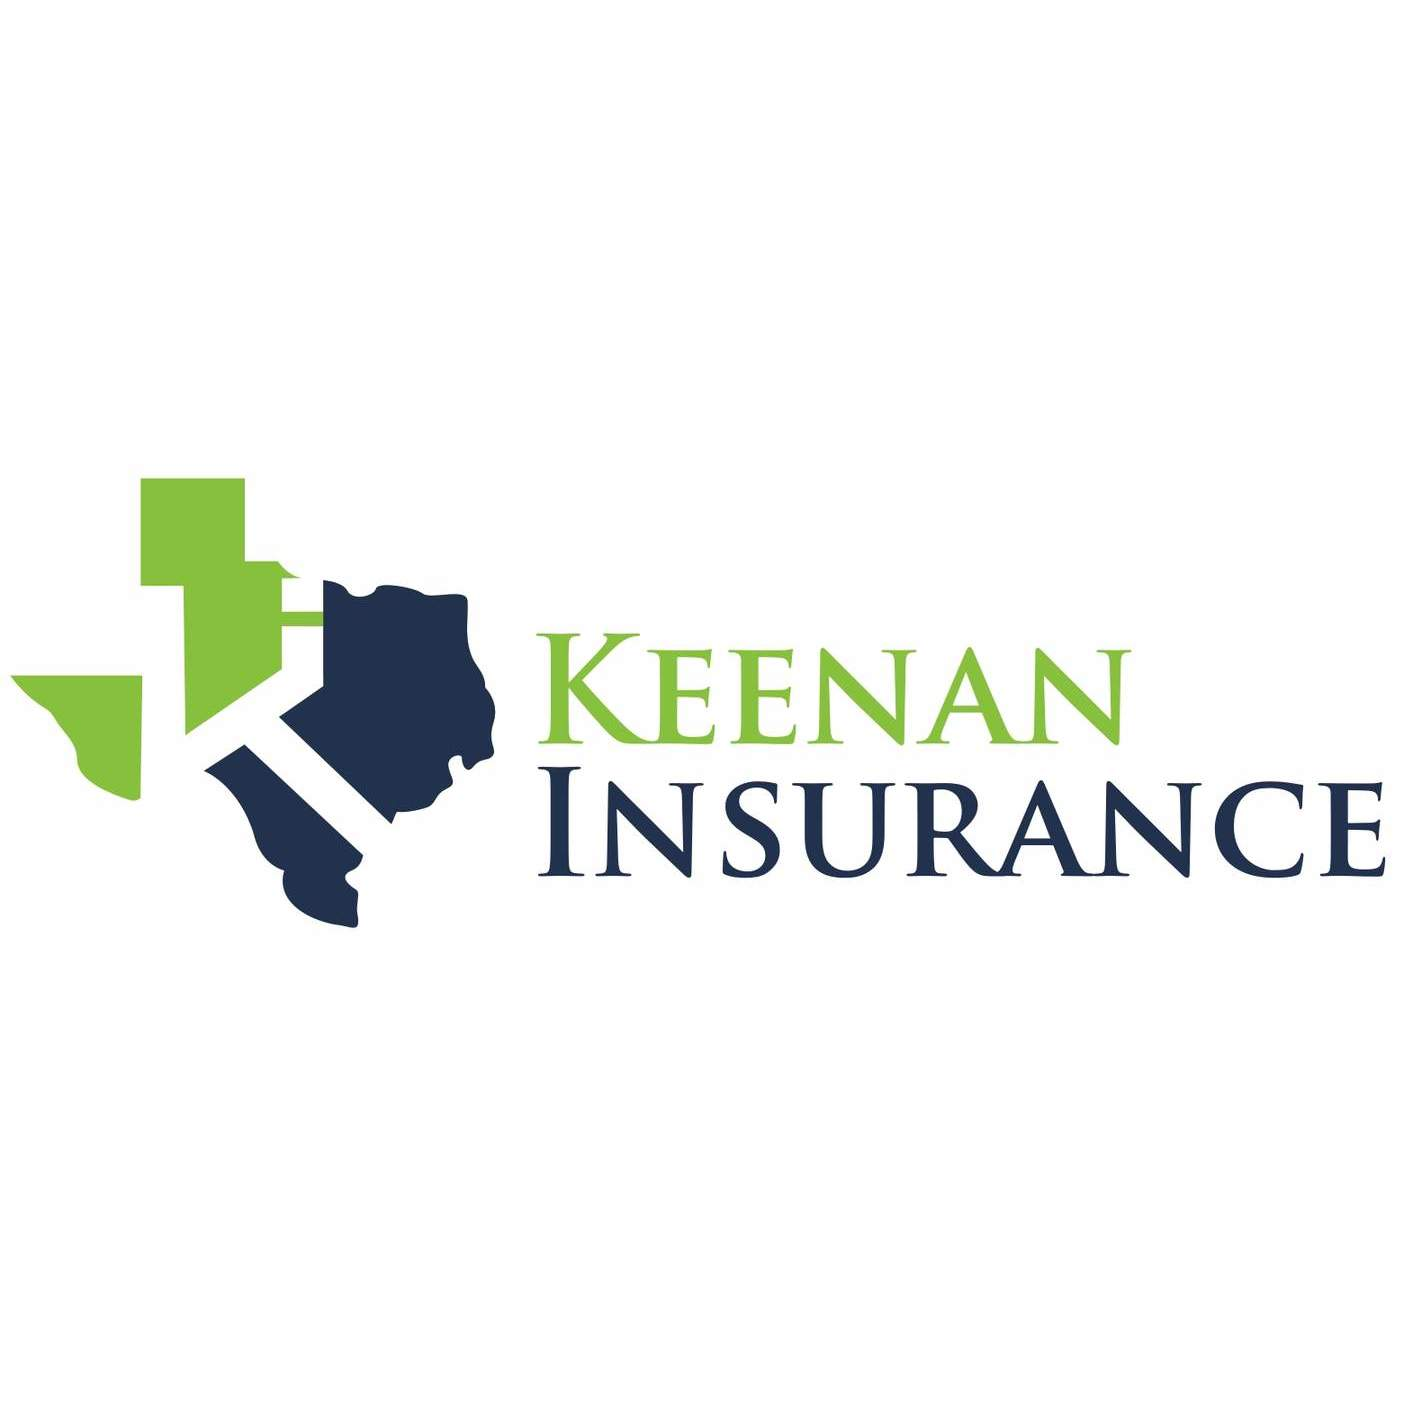 Keenan Insurance & Financial Services